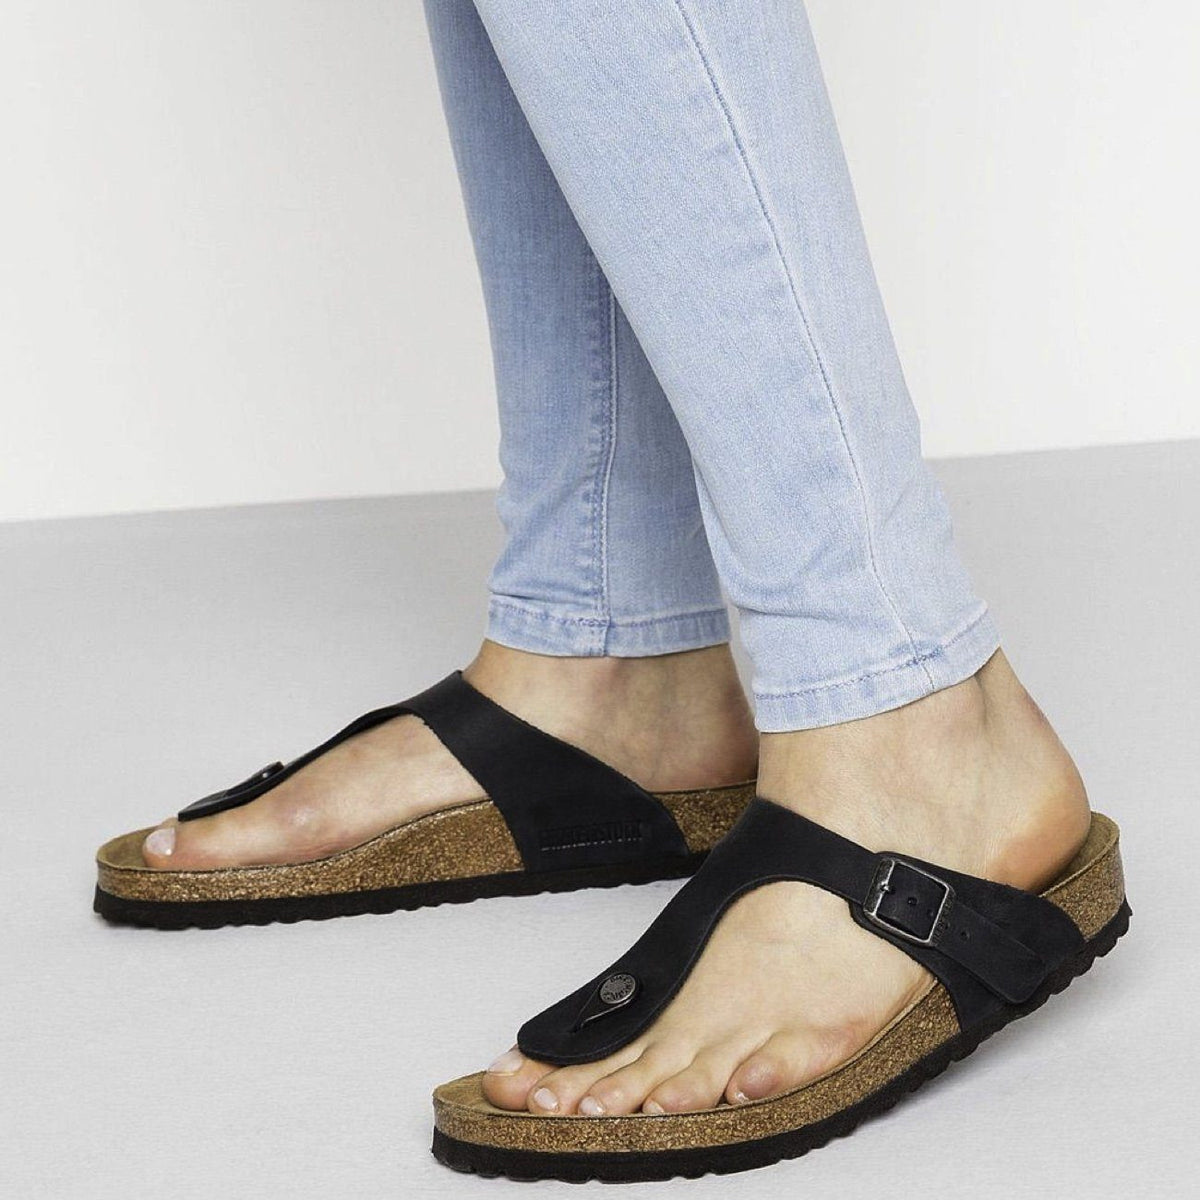 Birkenstock Seasonal, Gizeh, Oiled Leather, Regular Fit, Black Sandals Birkenstock Seasonal